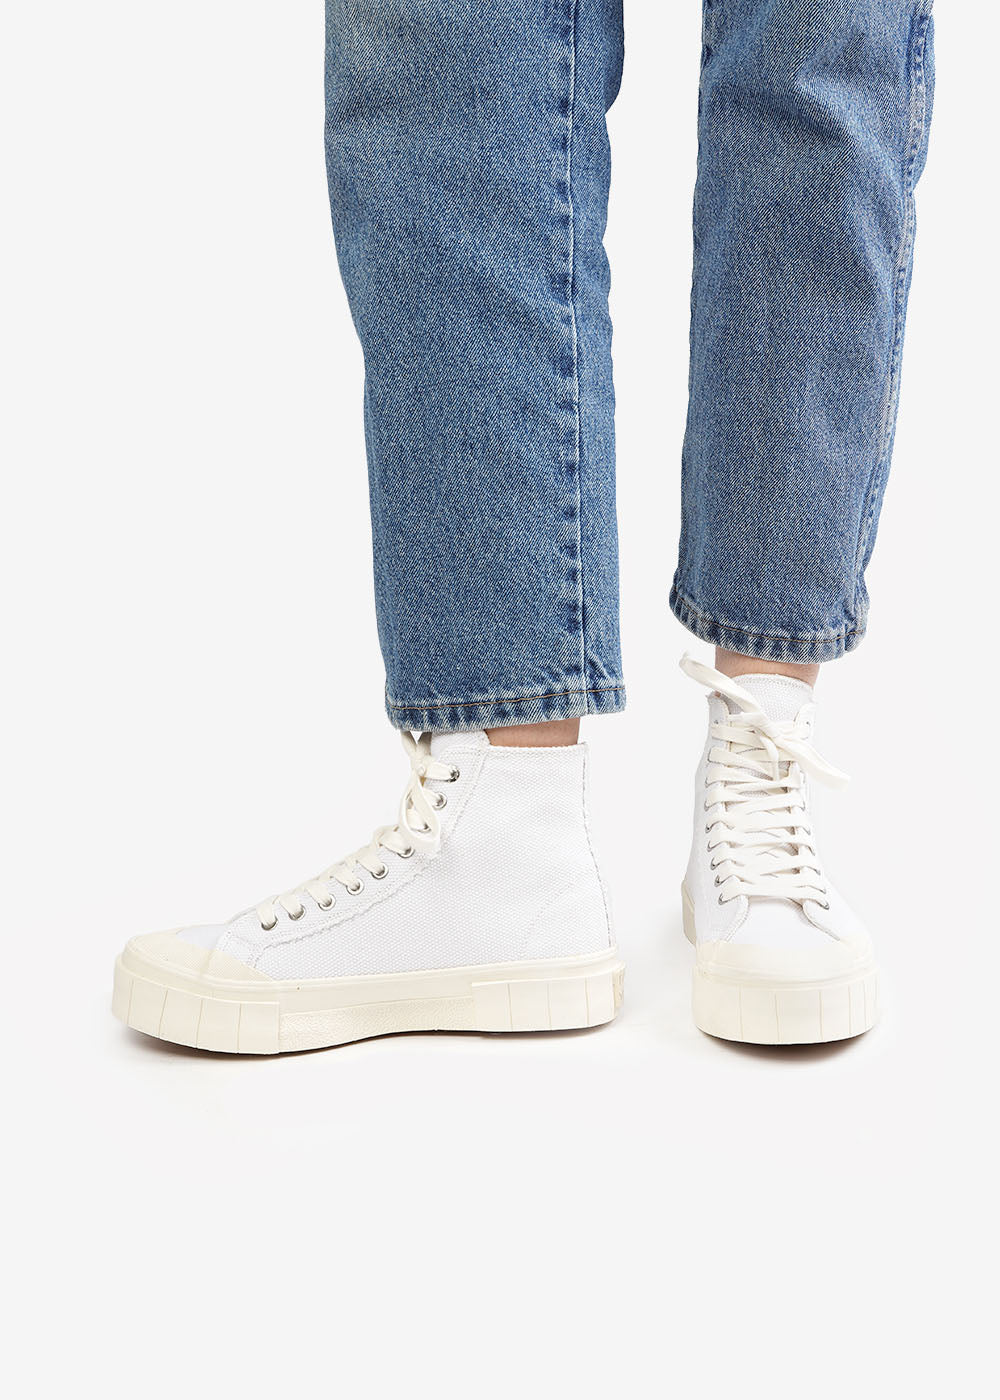 GOOD NEWS White Juice Sneakers — Shop sustainable fashion and slow fashion at New Classics Studios